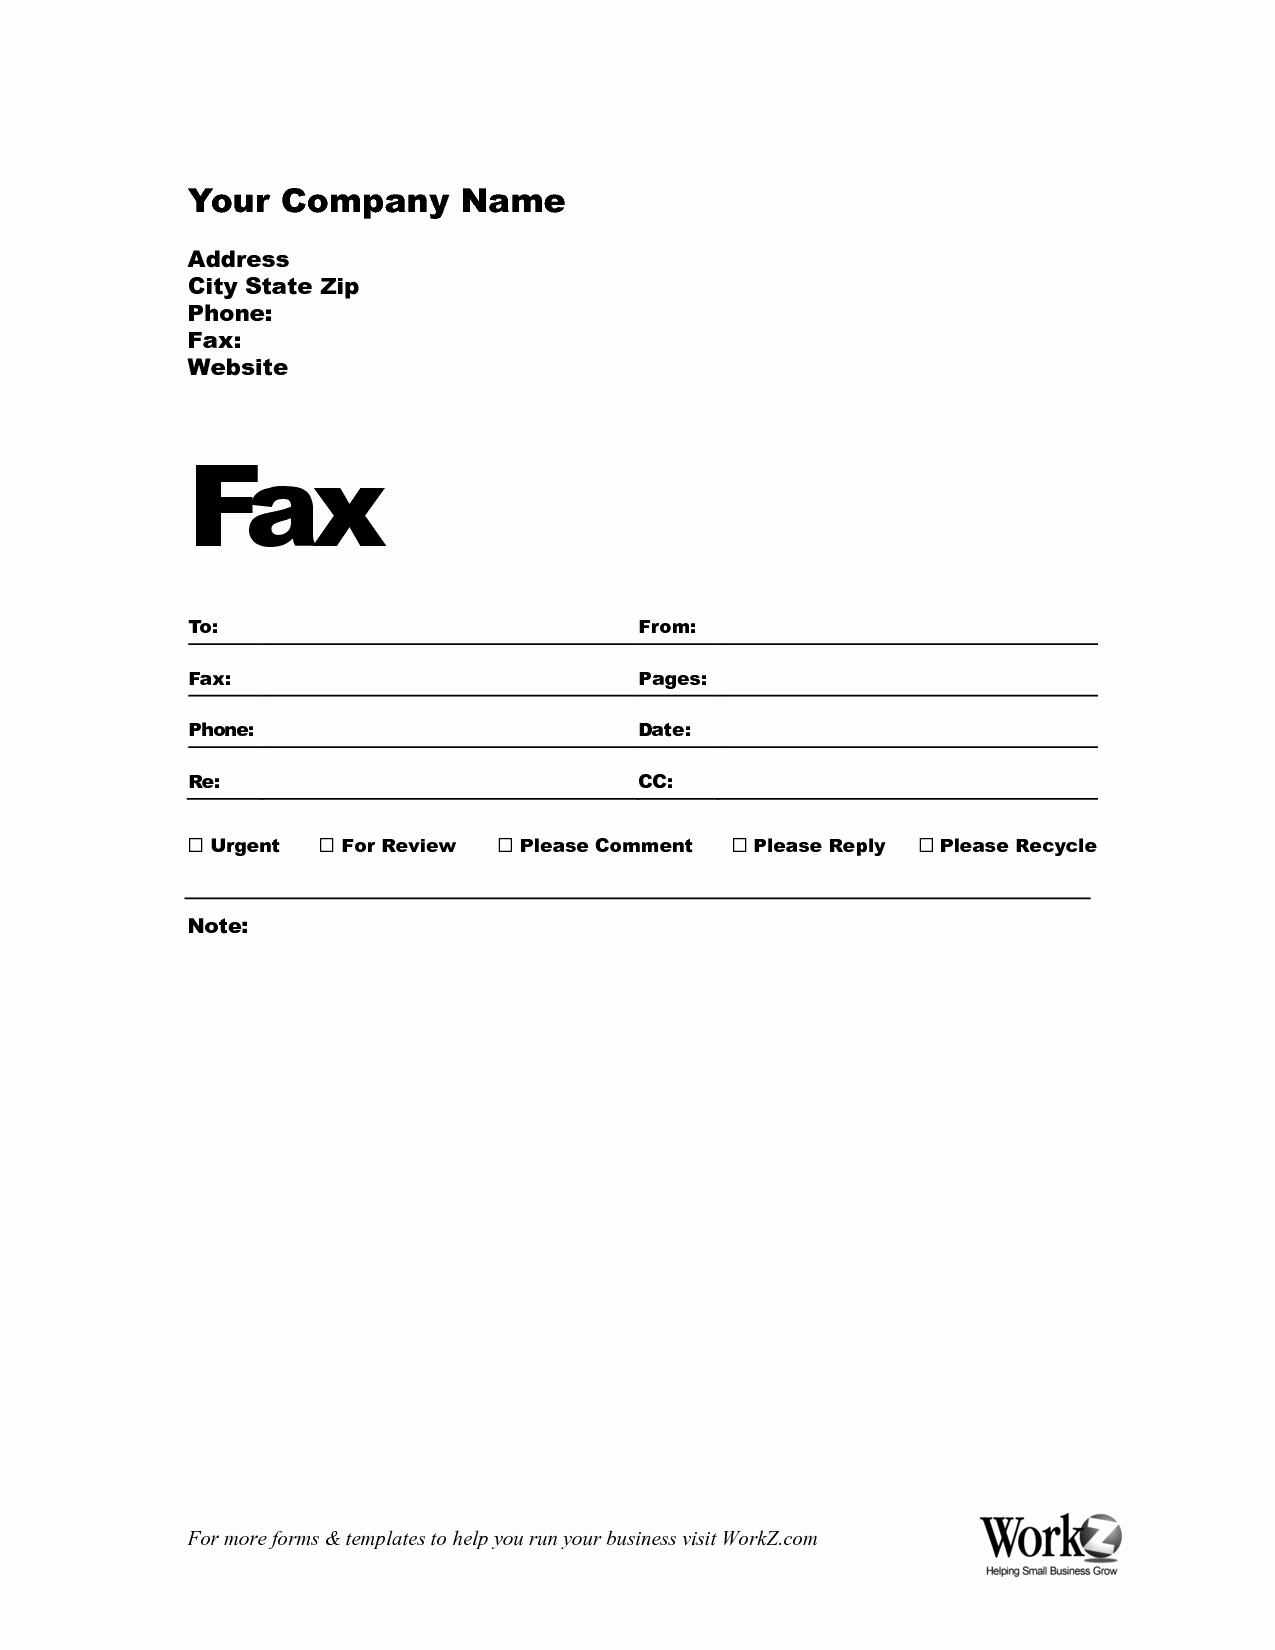 Sample Of Fax Cover Sheets Best Of Free Fax Cover Sheet Template Bamboodownunder